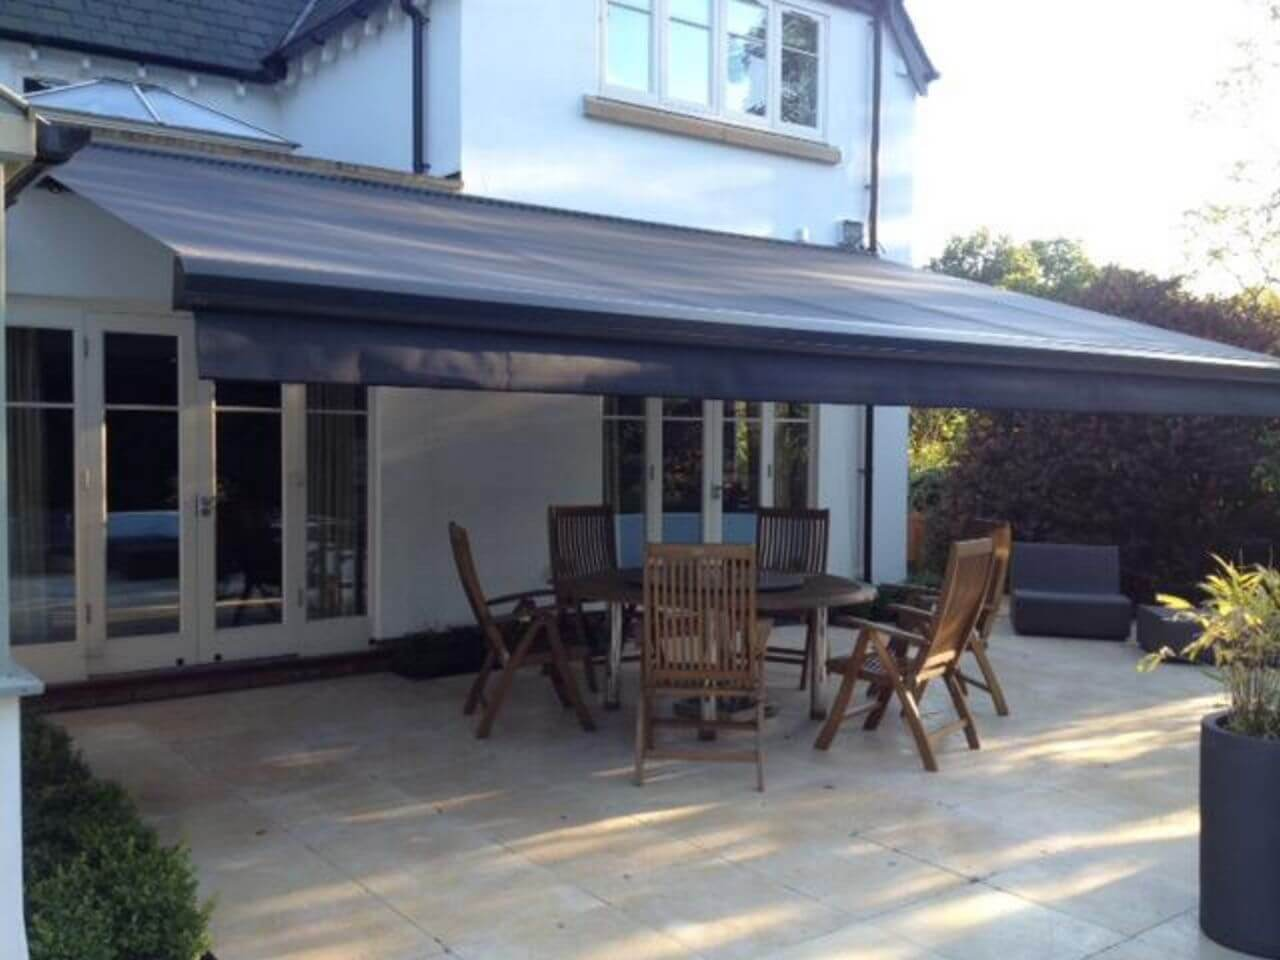 Weinor K2000 electric awning in black over a patio and garden furniture